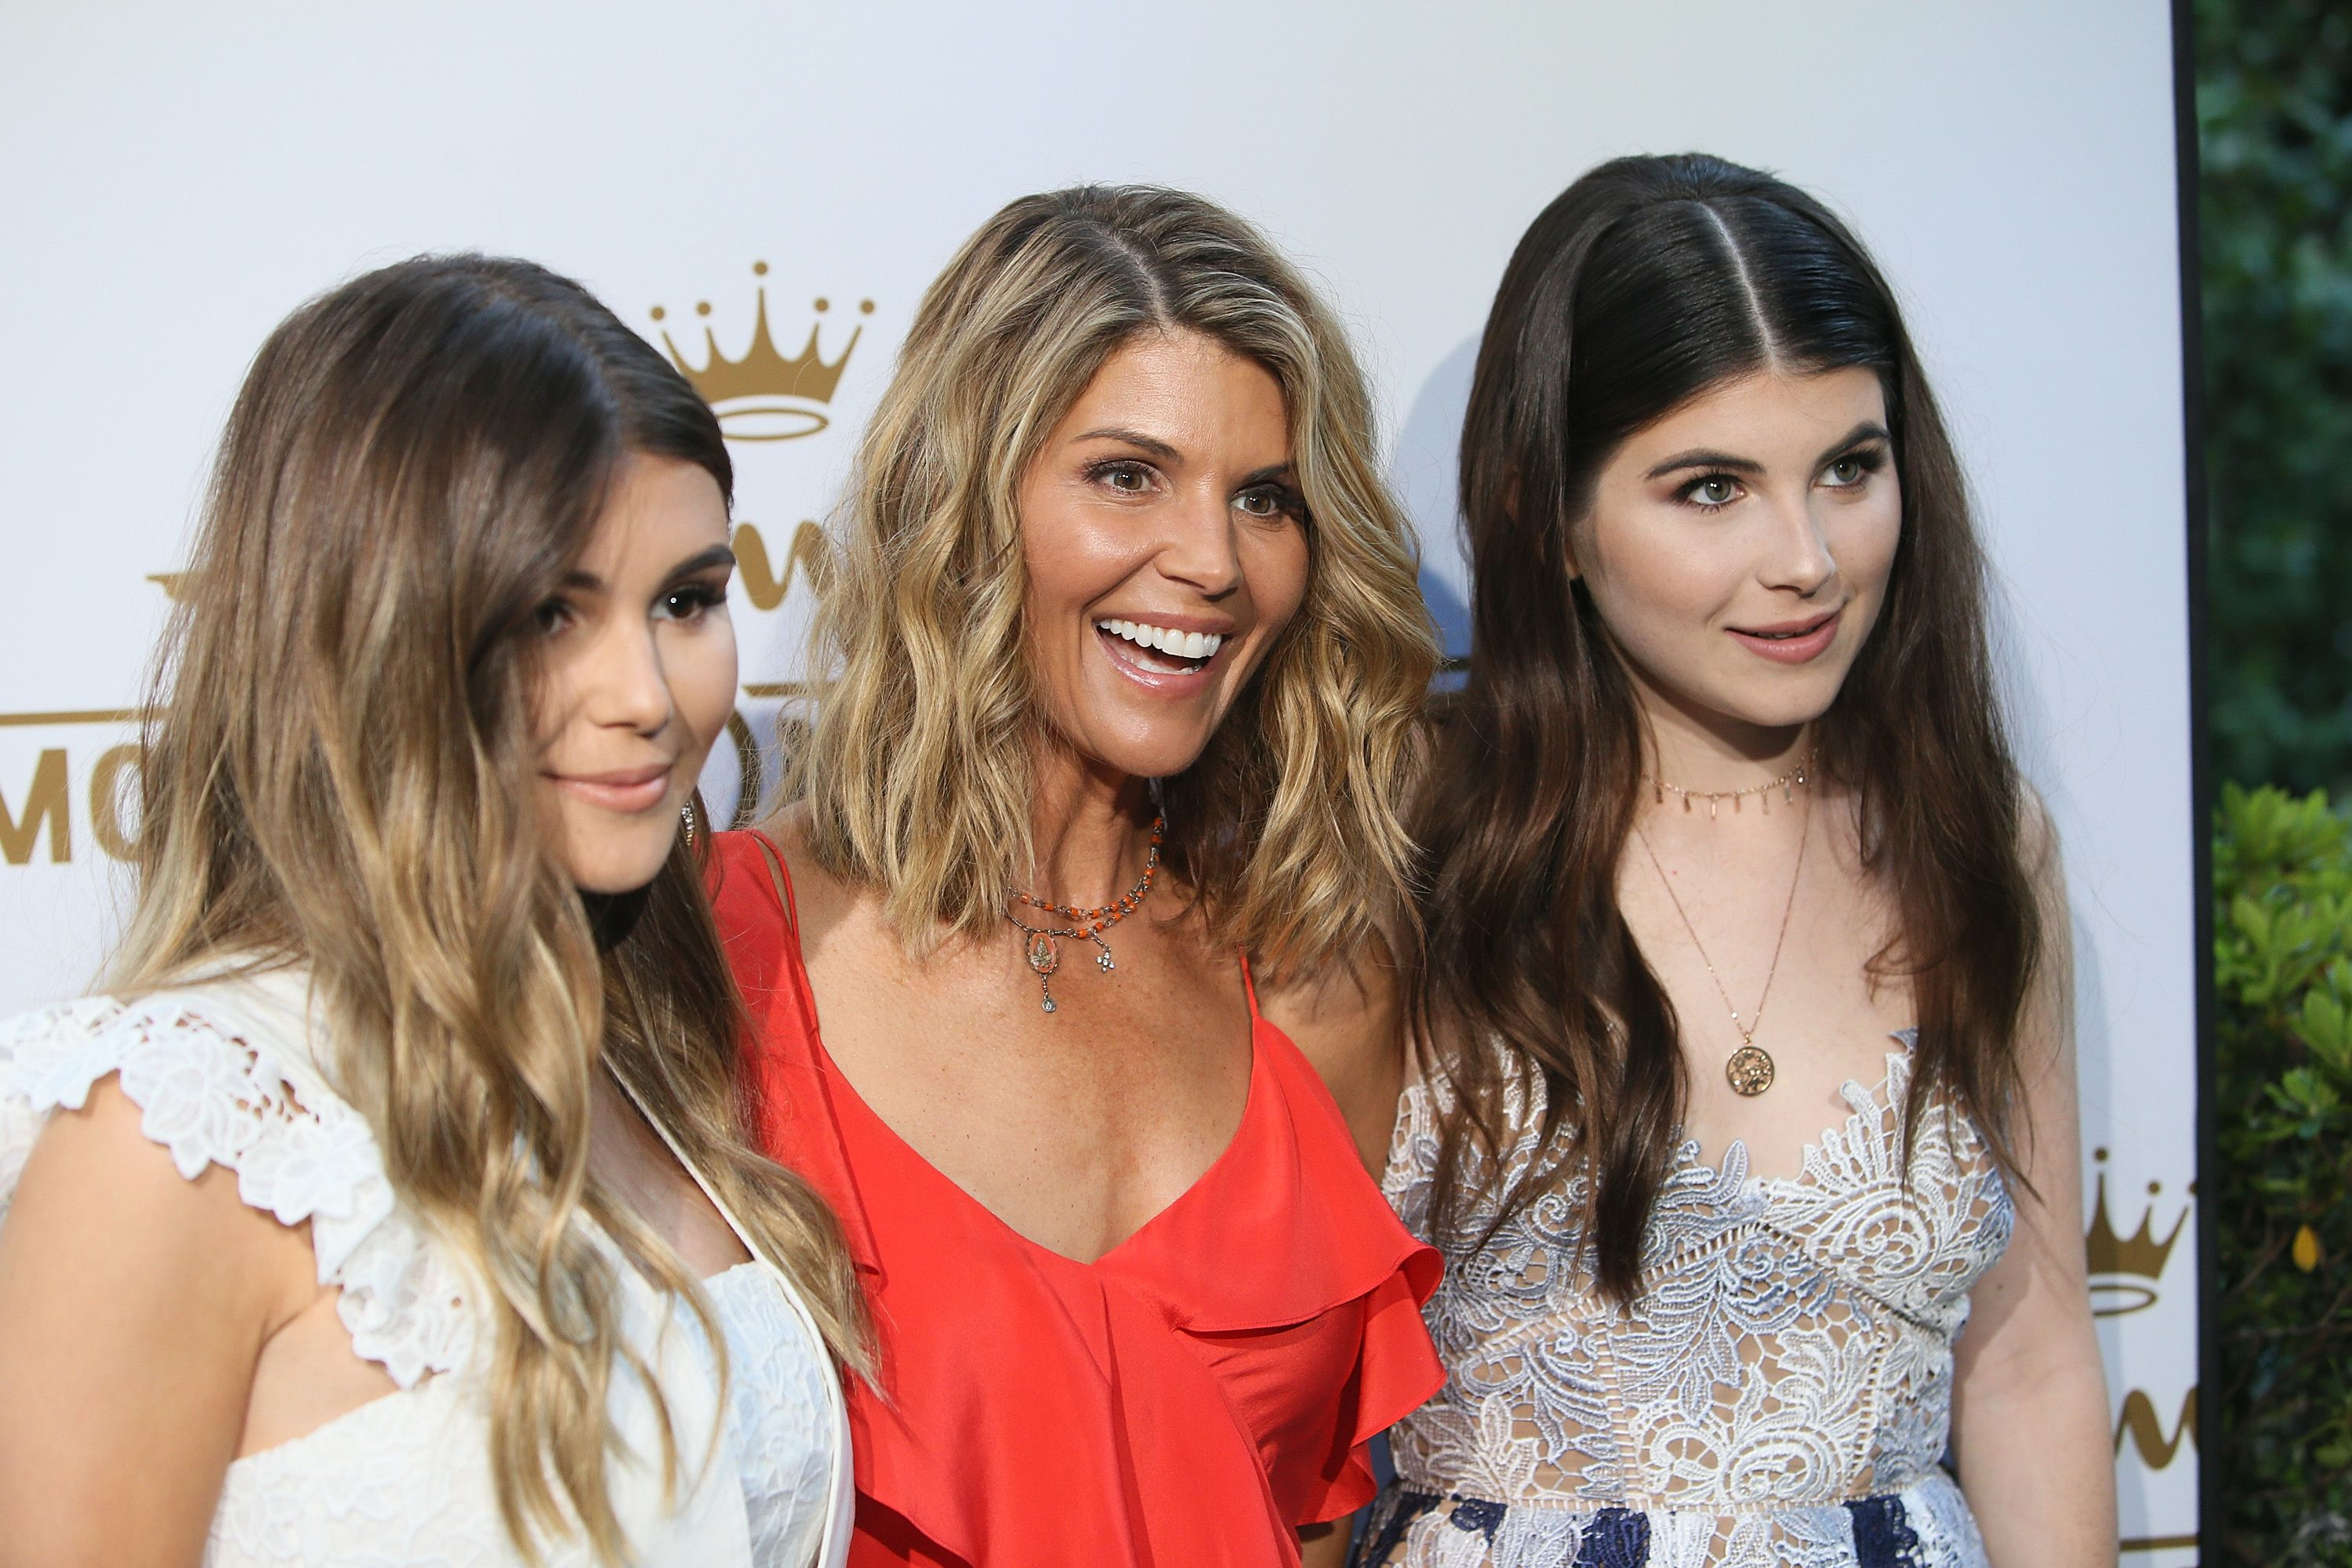 Lori Loughlin, Isabella Rose and Olivia Jade Giannulli attend the Hallmark Channel and Hallmark Movies and Mysteries 2017 Summer TCA Tour on July 27, 2017 in Beverly Hills, California. | Source: Getty Images